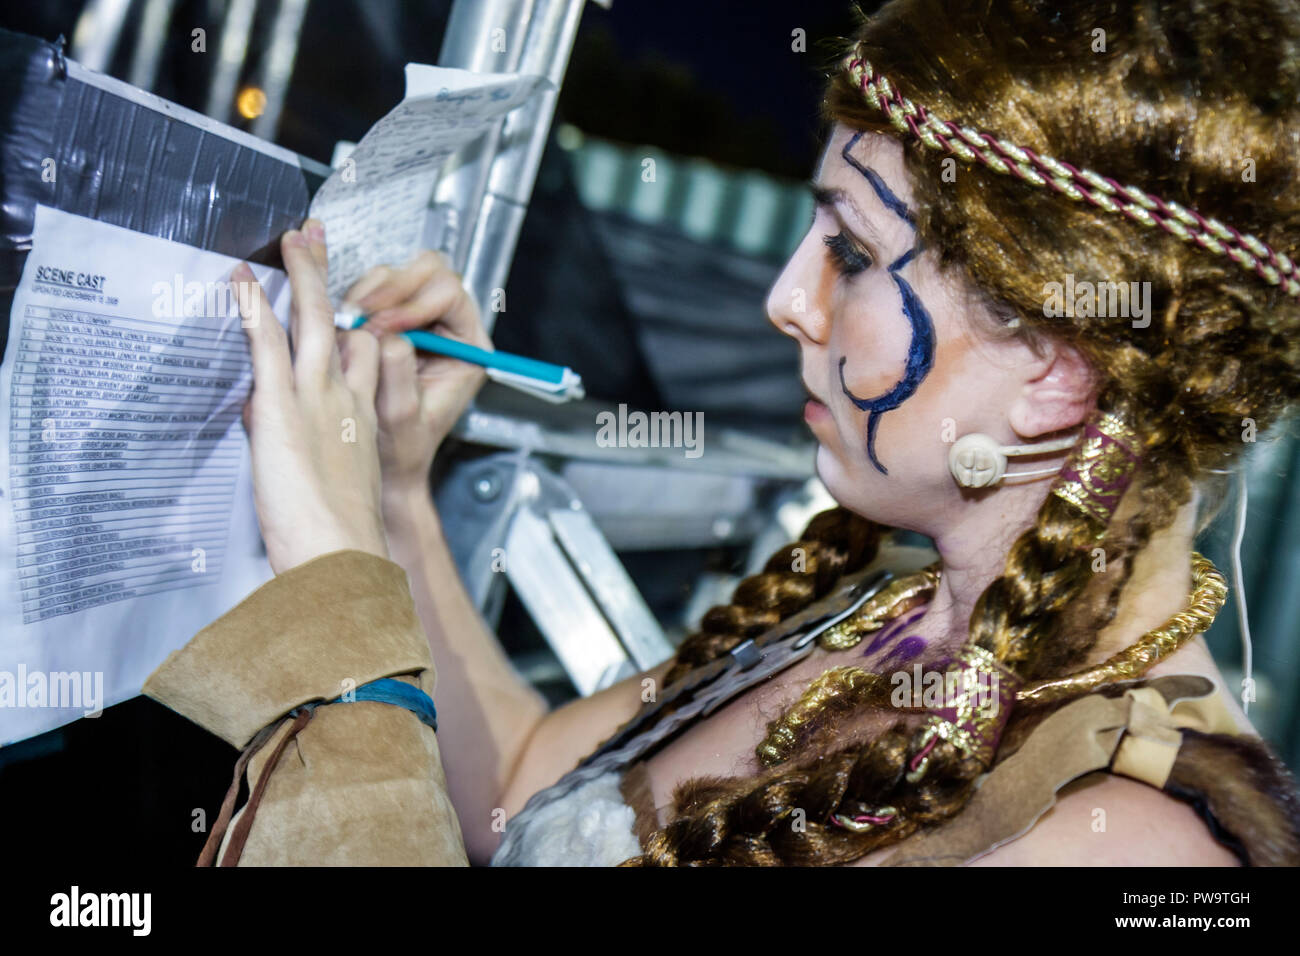 Miami Beach Florida Flamingo Park Arts in the Park Shakespeare Macbeth actor acting role play theater woman theatrical makeup dr - Stock Image